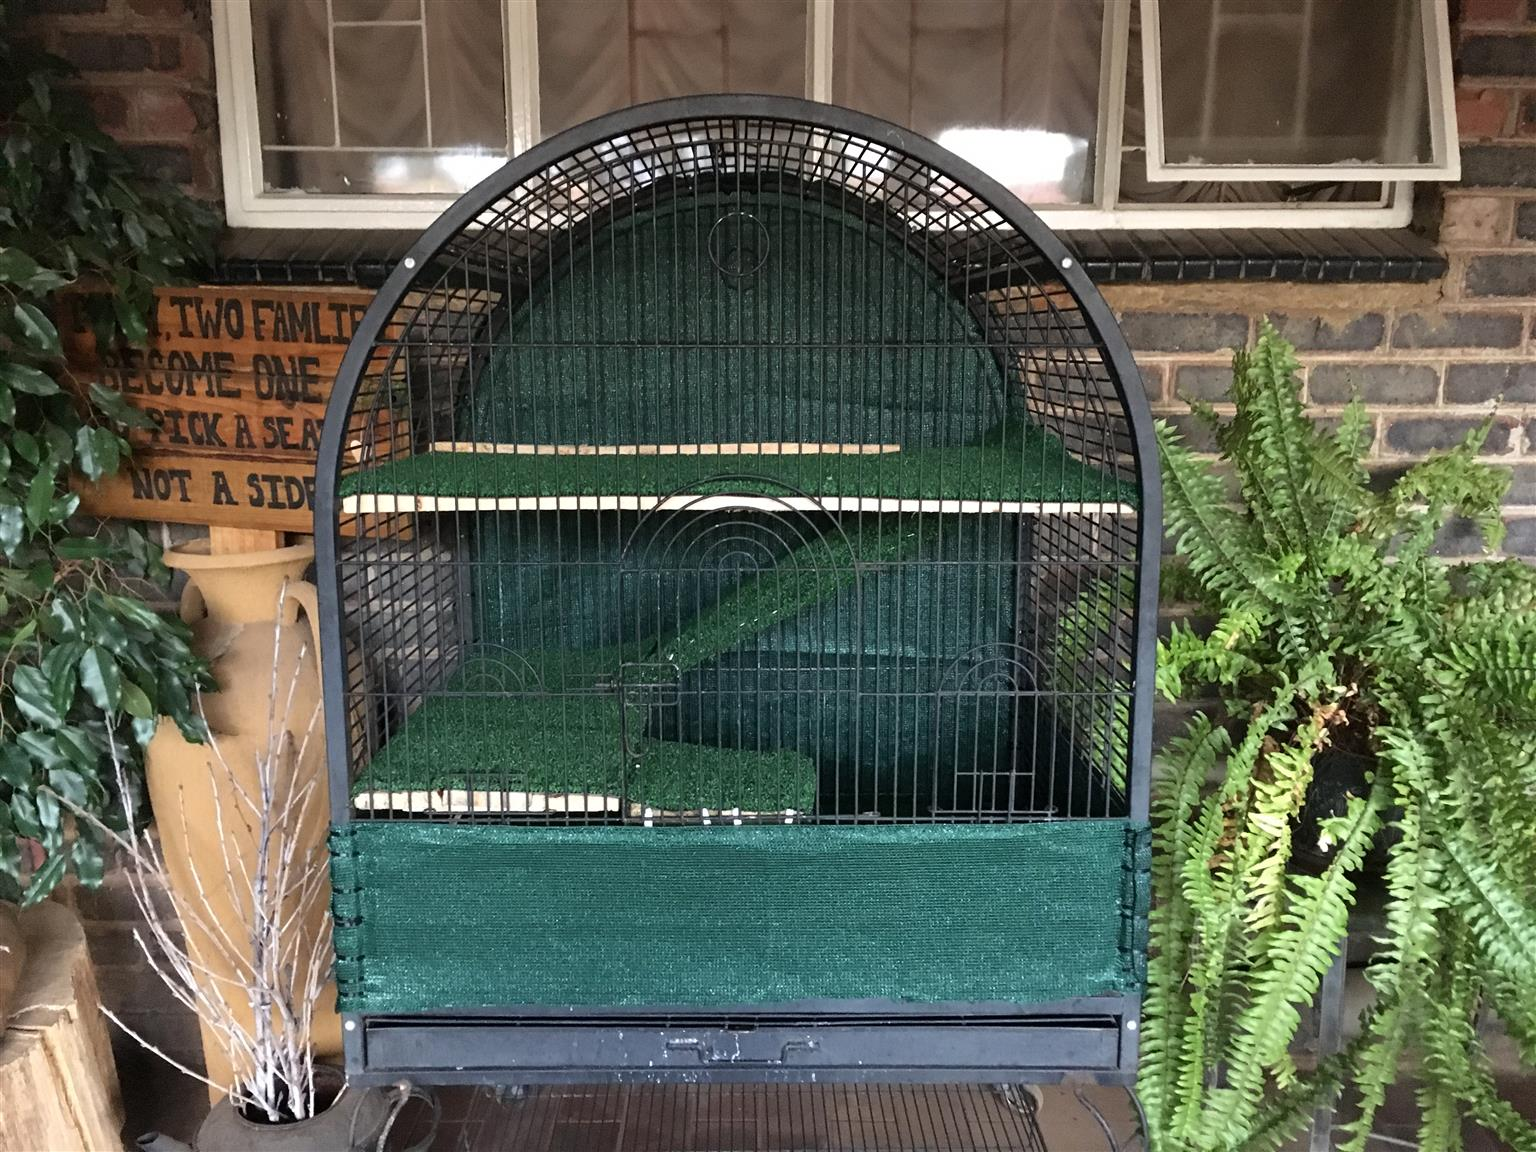 Big Cage with levels for pet rat.